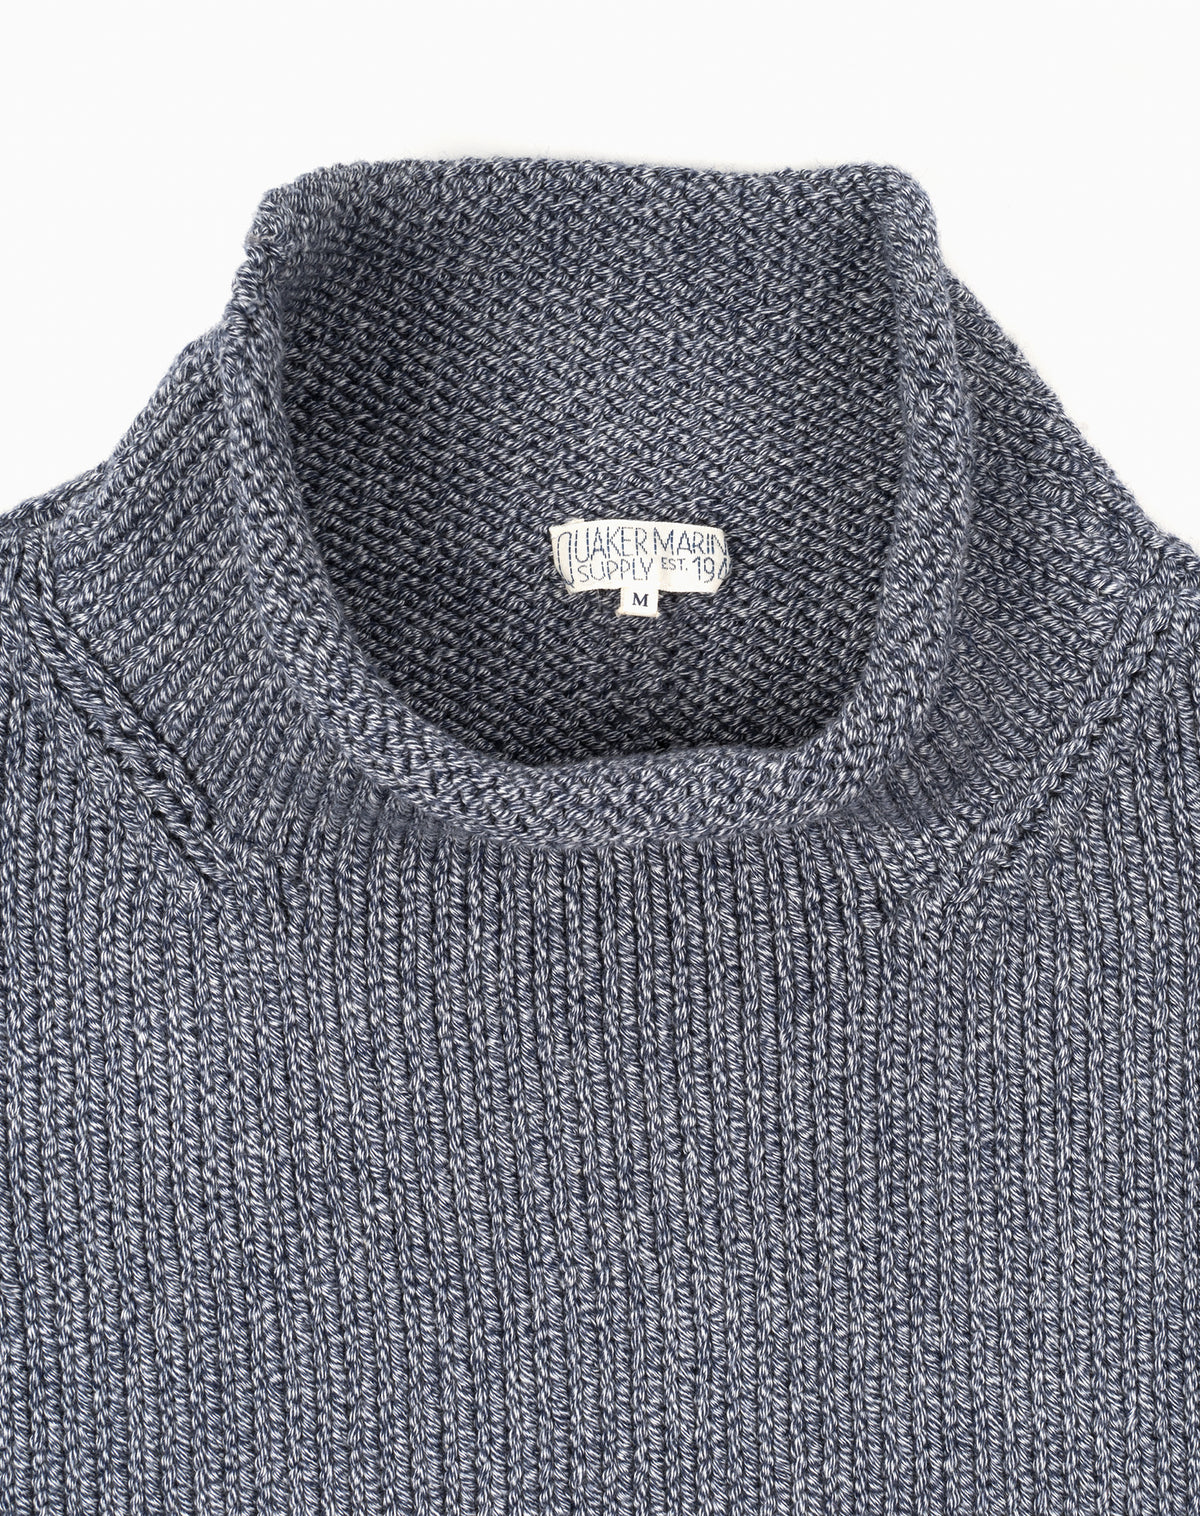 Fisherman's Sweater in Denim Mix